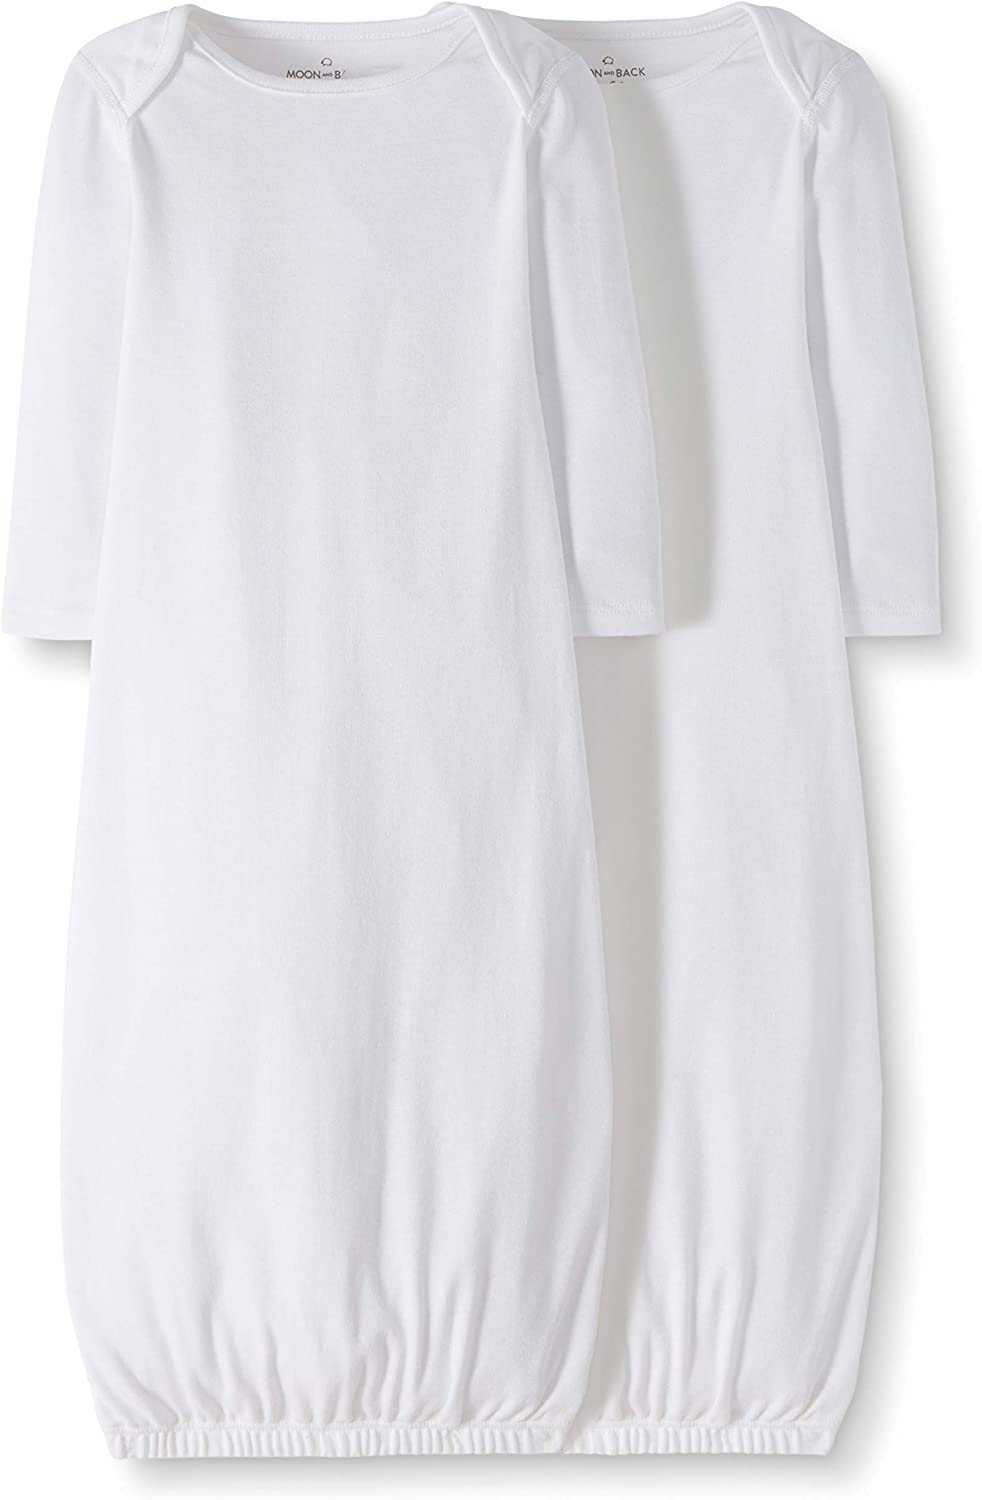 Moon and Back by Hanna Andersson Unisex Baby 2-Pack Organic Cotton Sleeper Gown